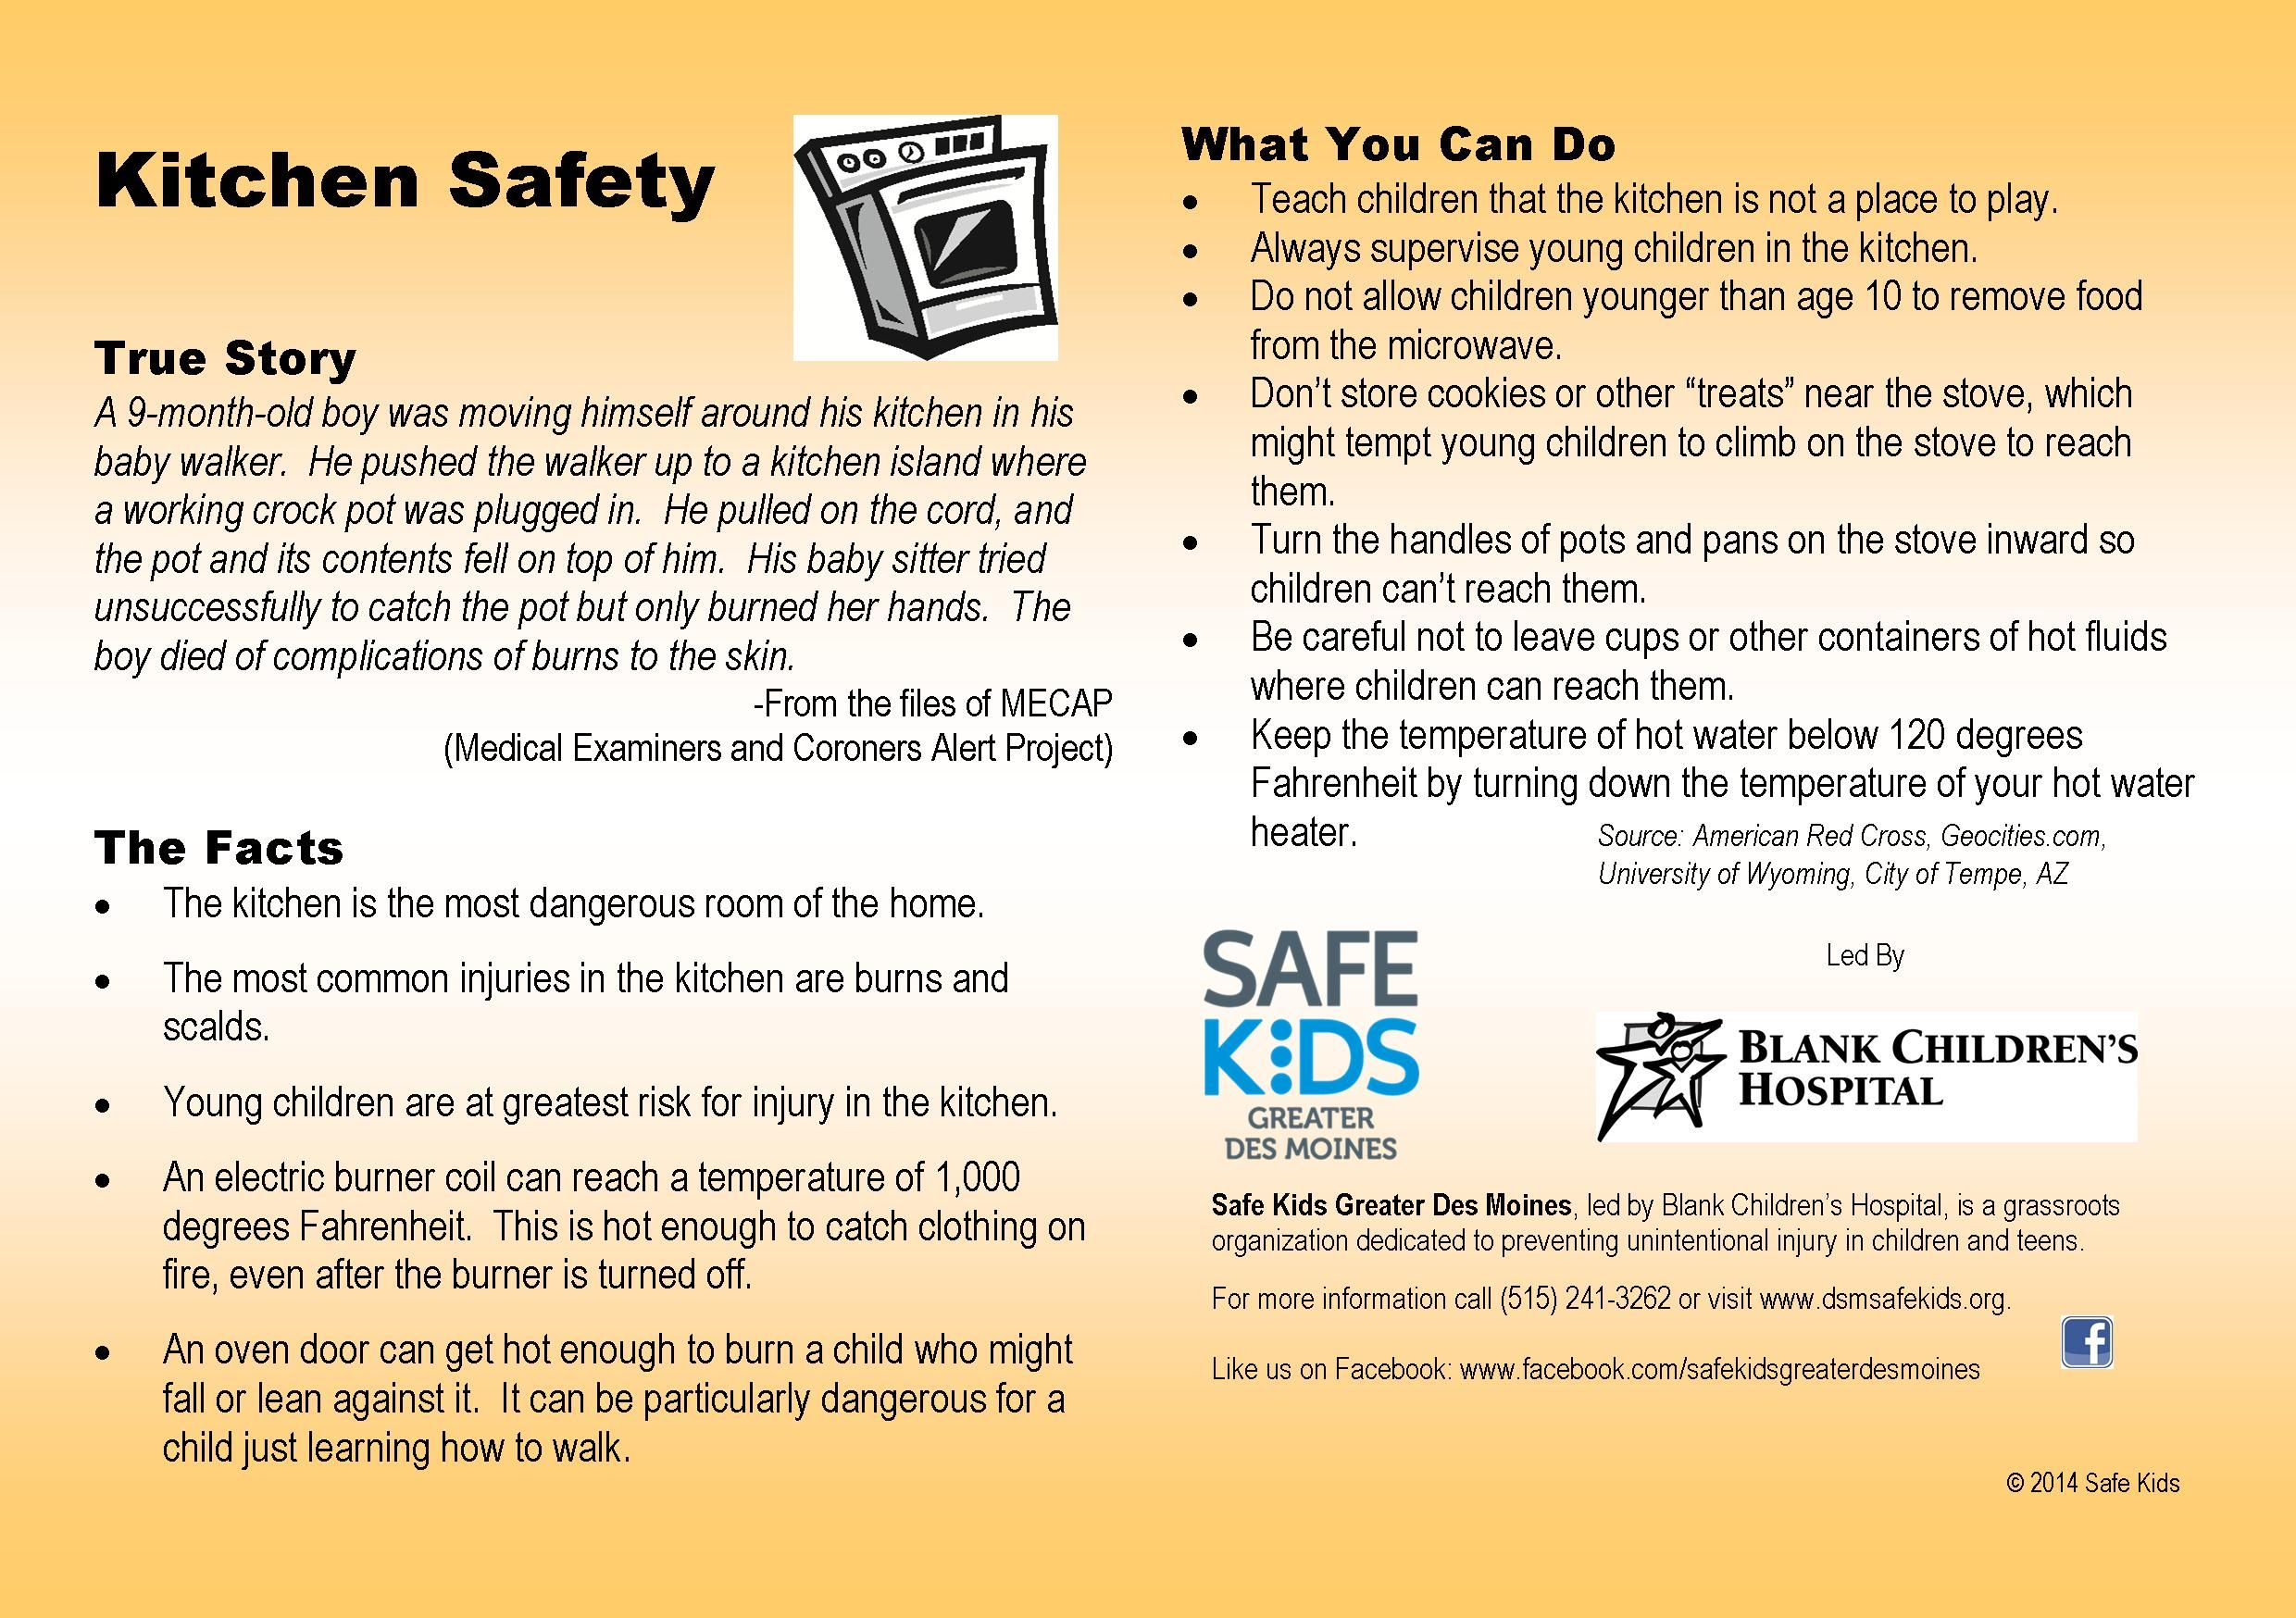 Kitchen Safety Tips With Images